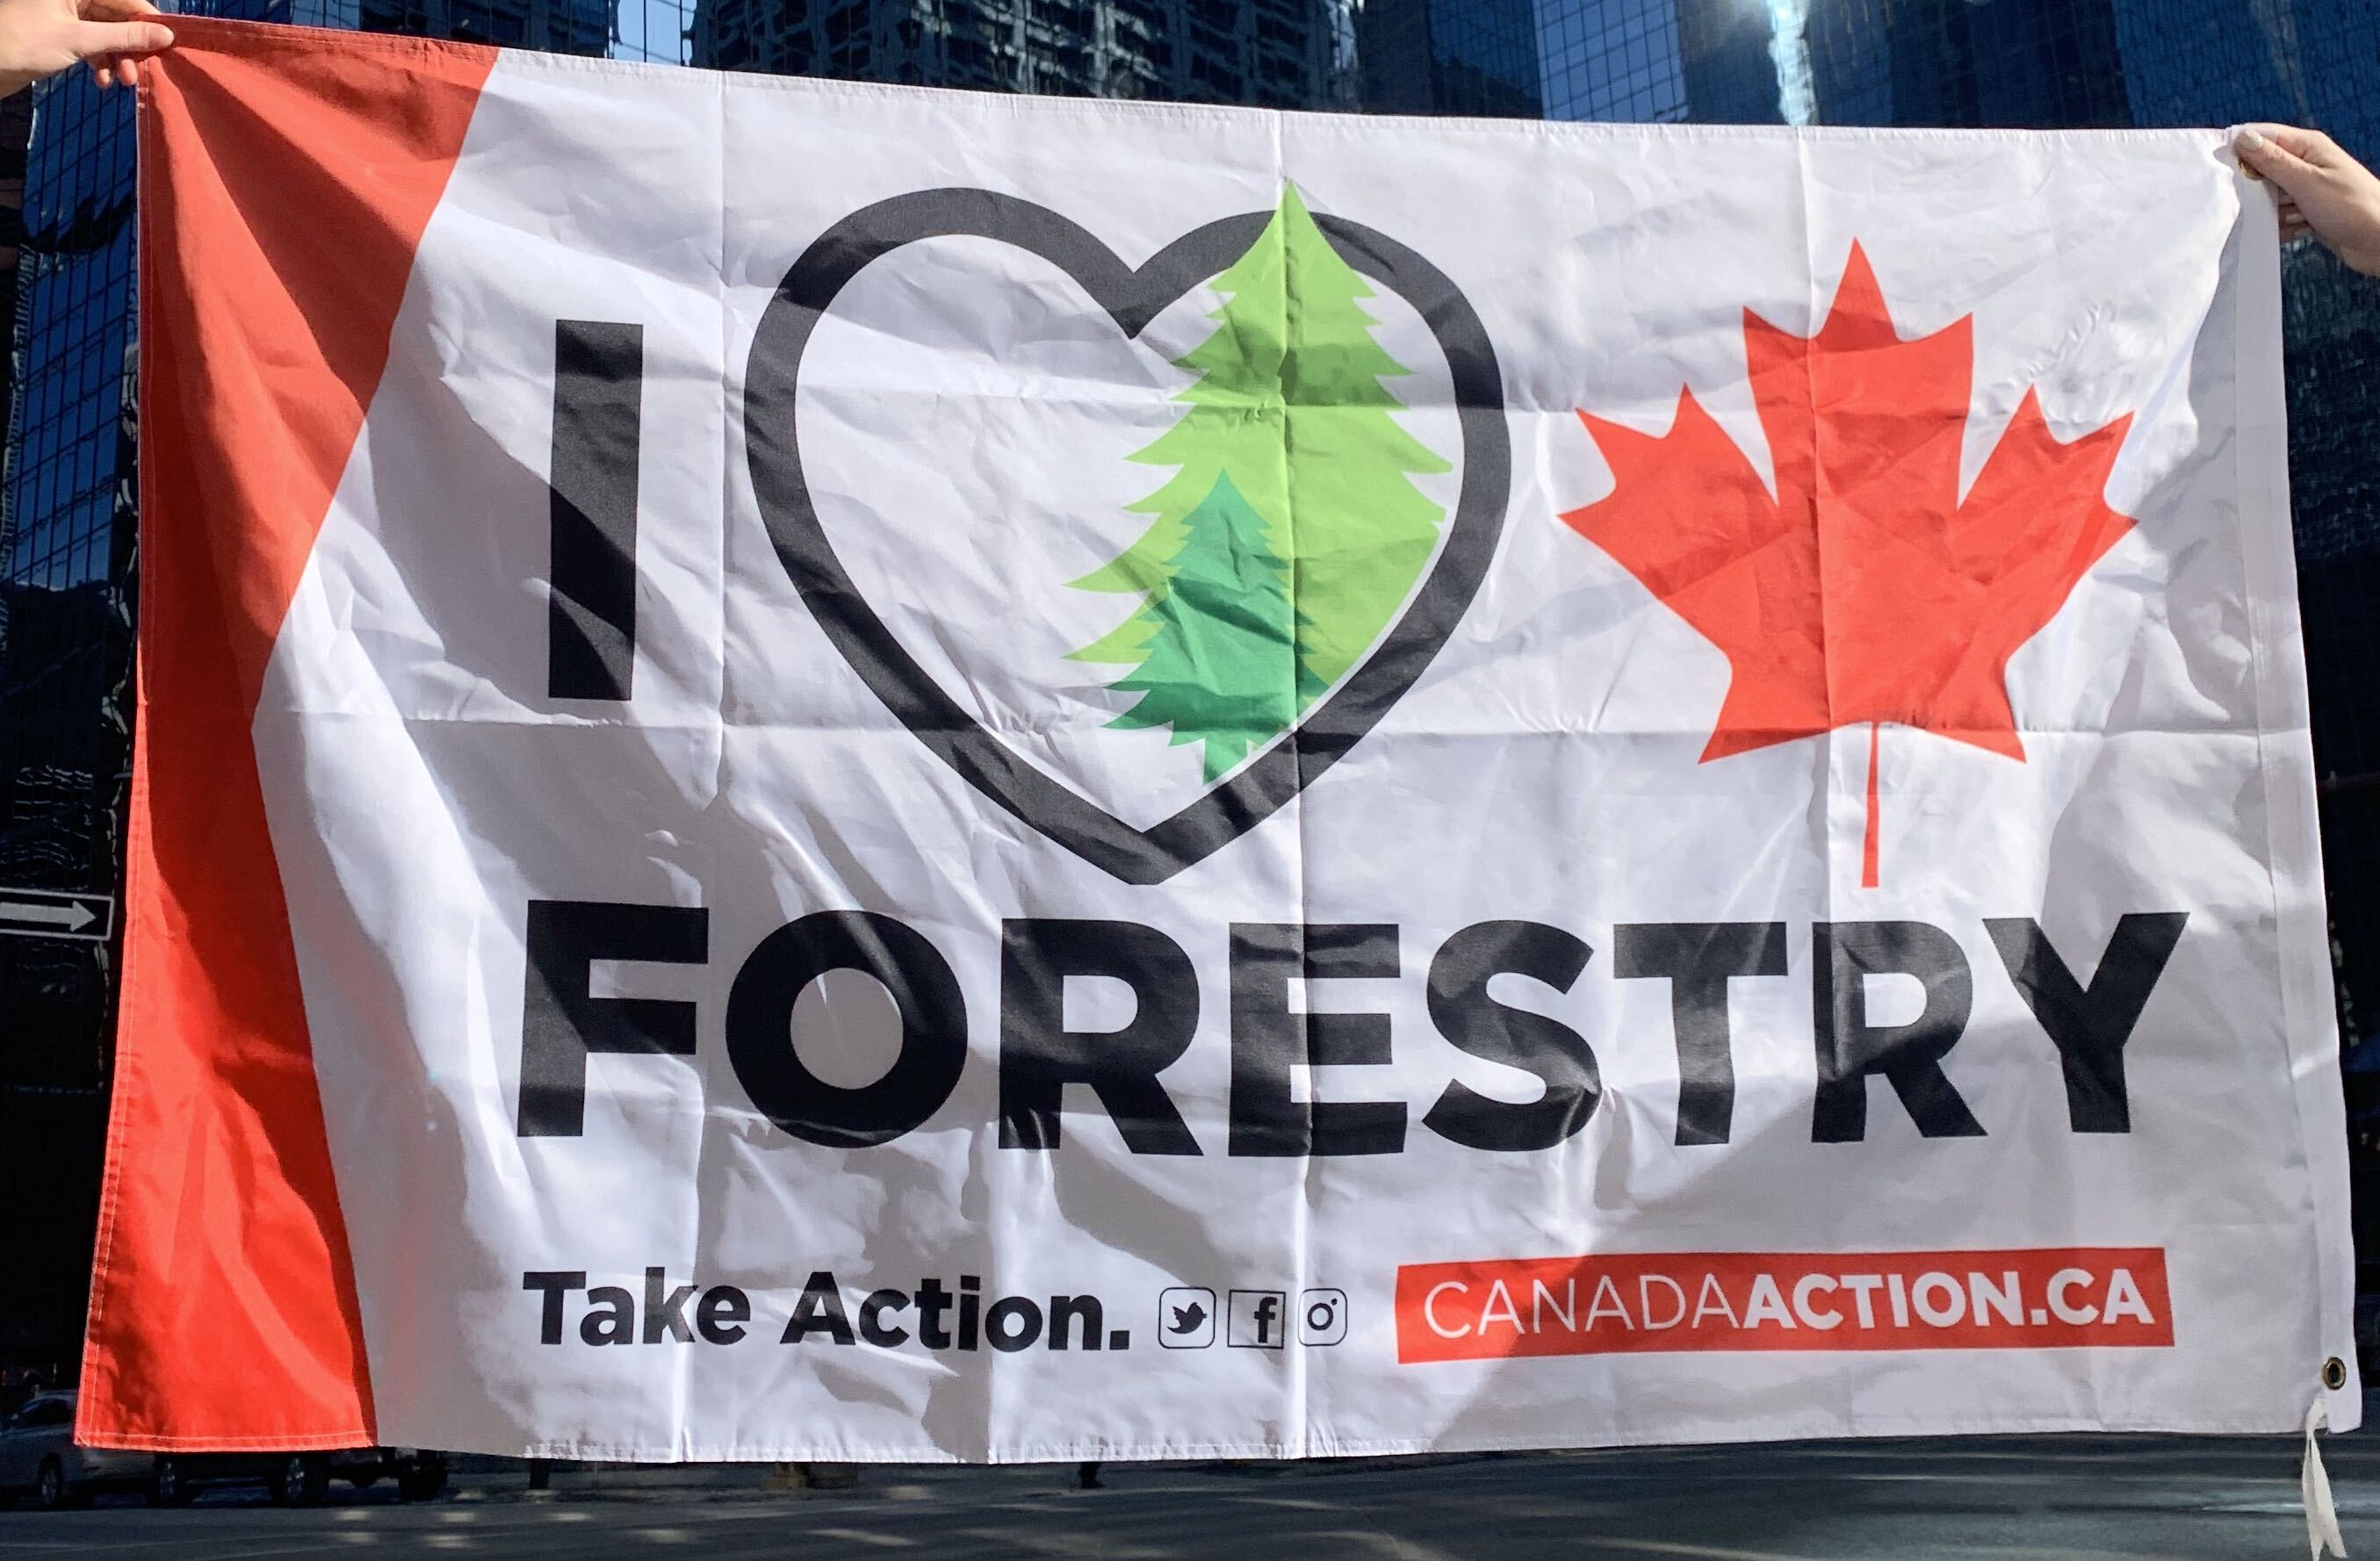 I Love Canadian Forestry - Canada Action